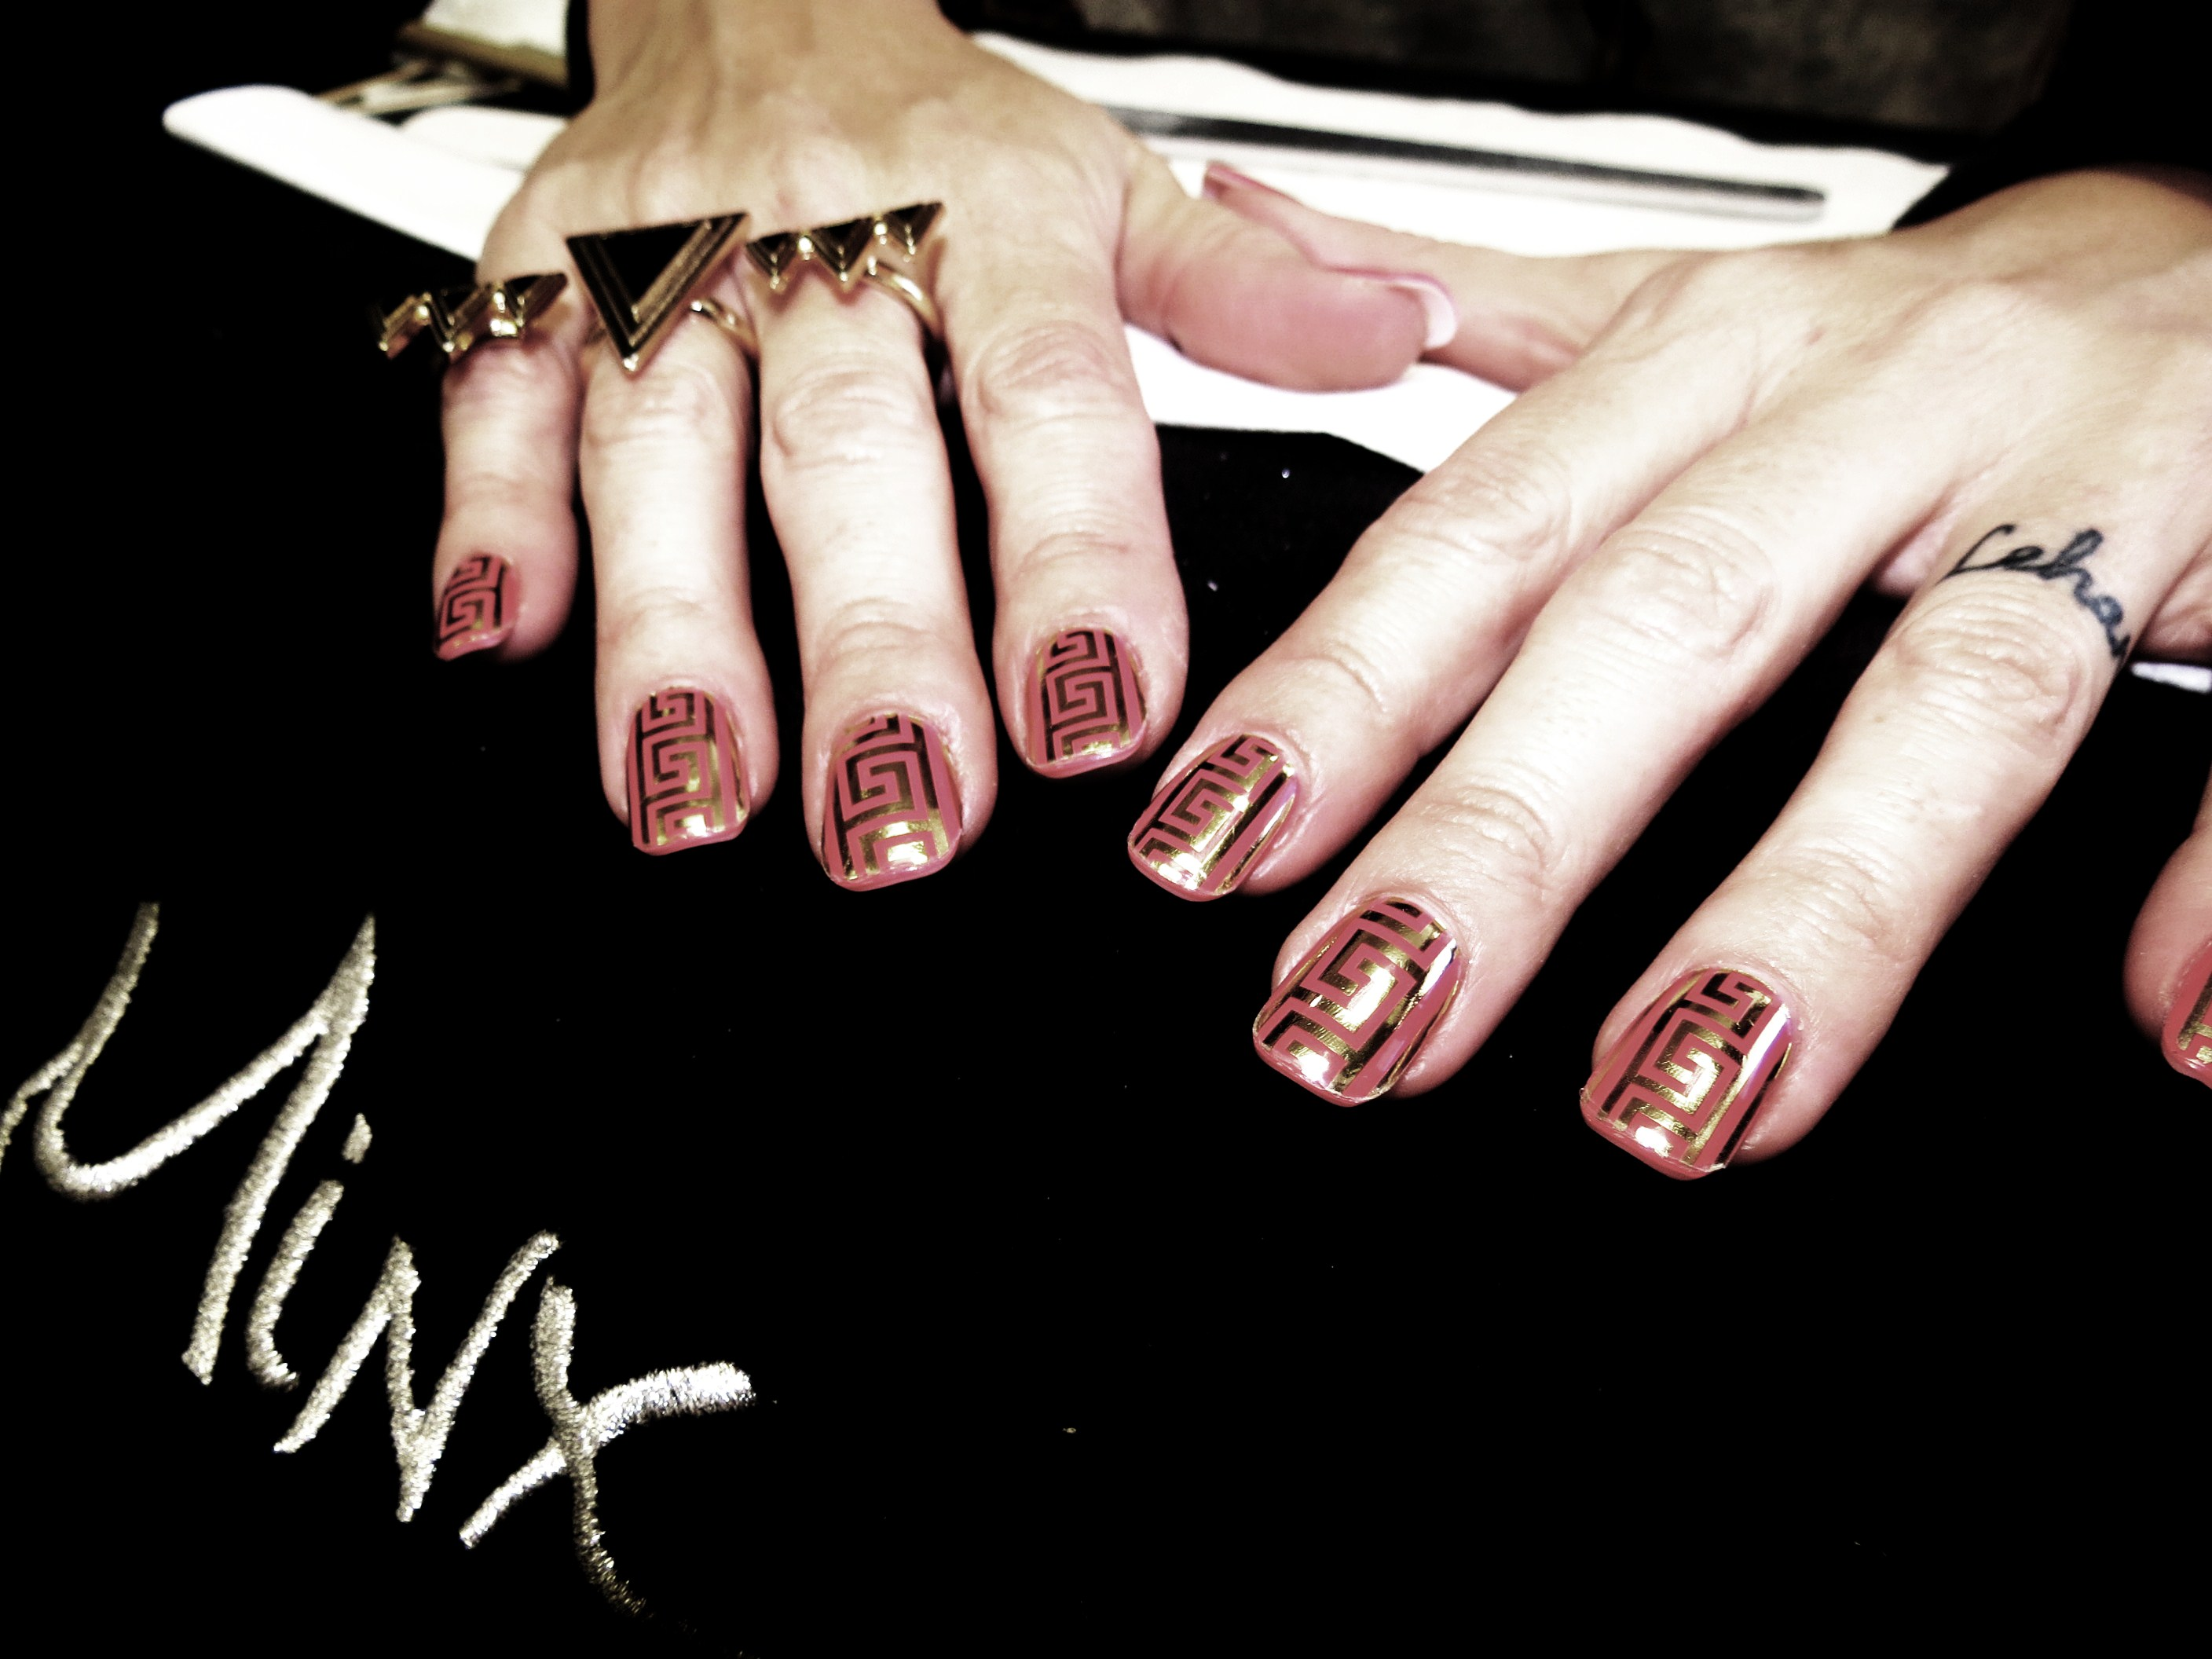 Minx nails south africa on LUXO